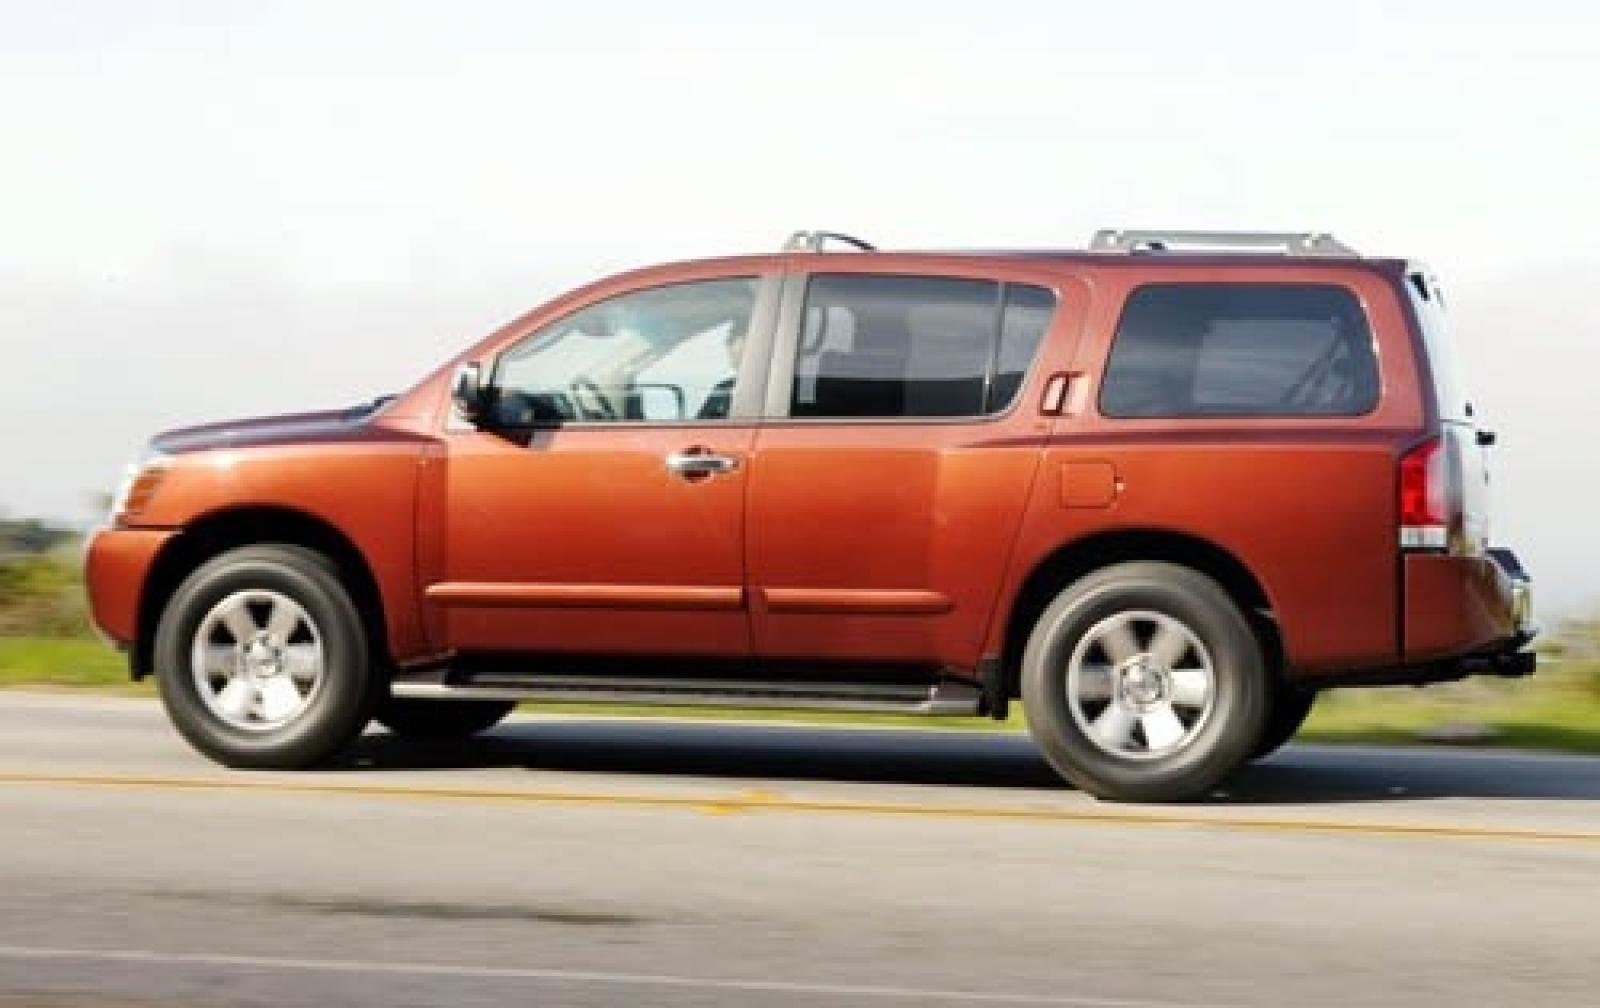 2006 nissan armada information and photos zombiedrive 2004 nissan armada rear e interior 6 800 1024 1280 1600 origin vanachro Images